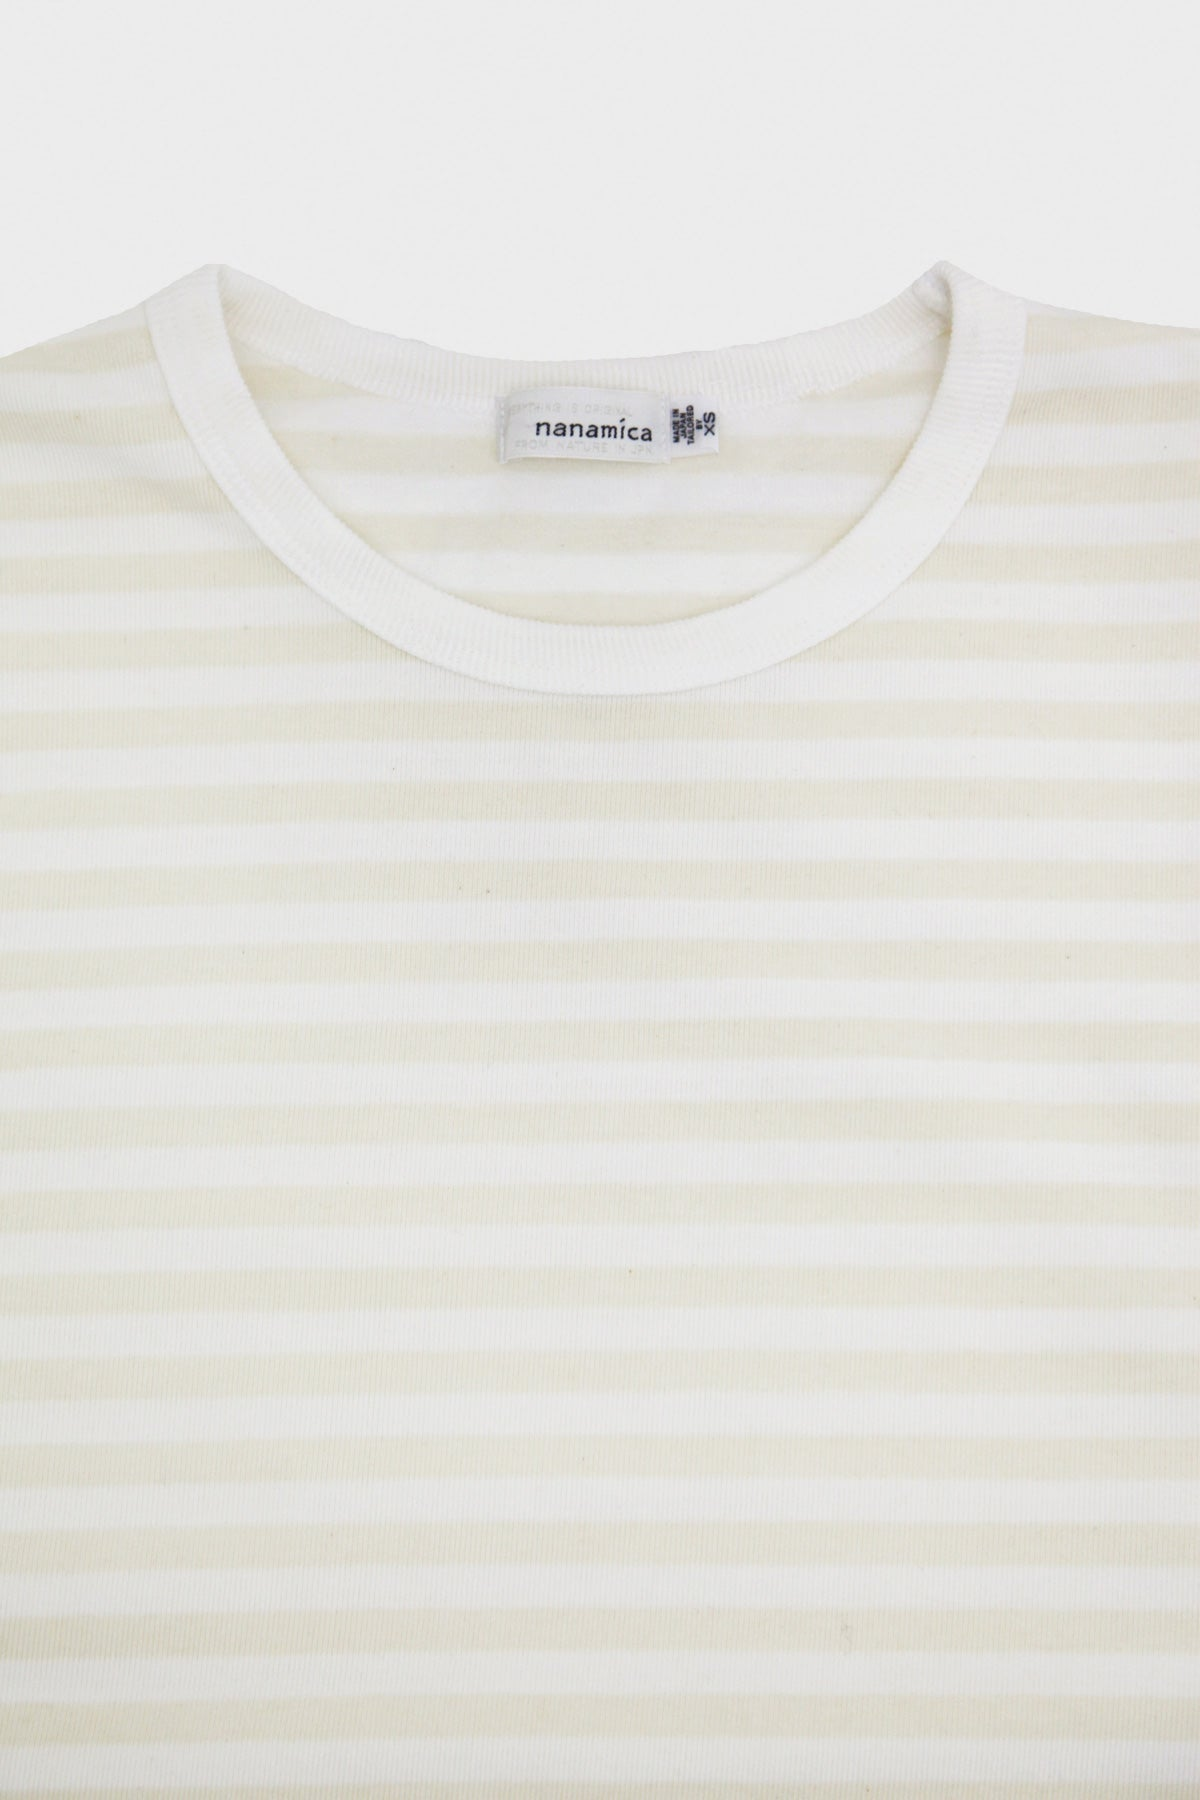 nanamica - COOLMAX  Striped Jersey Long Sleeve Tee - Ecru/White - Canoe Club